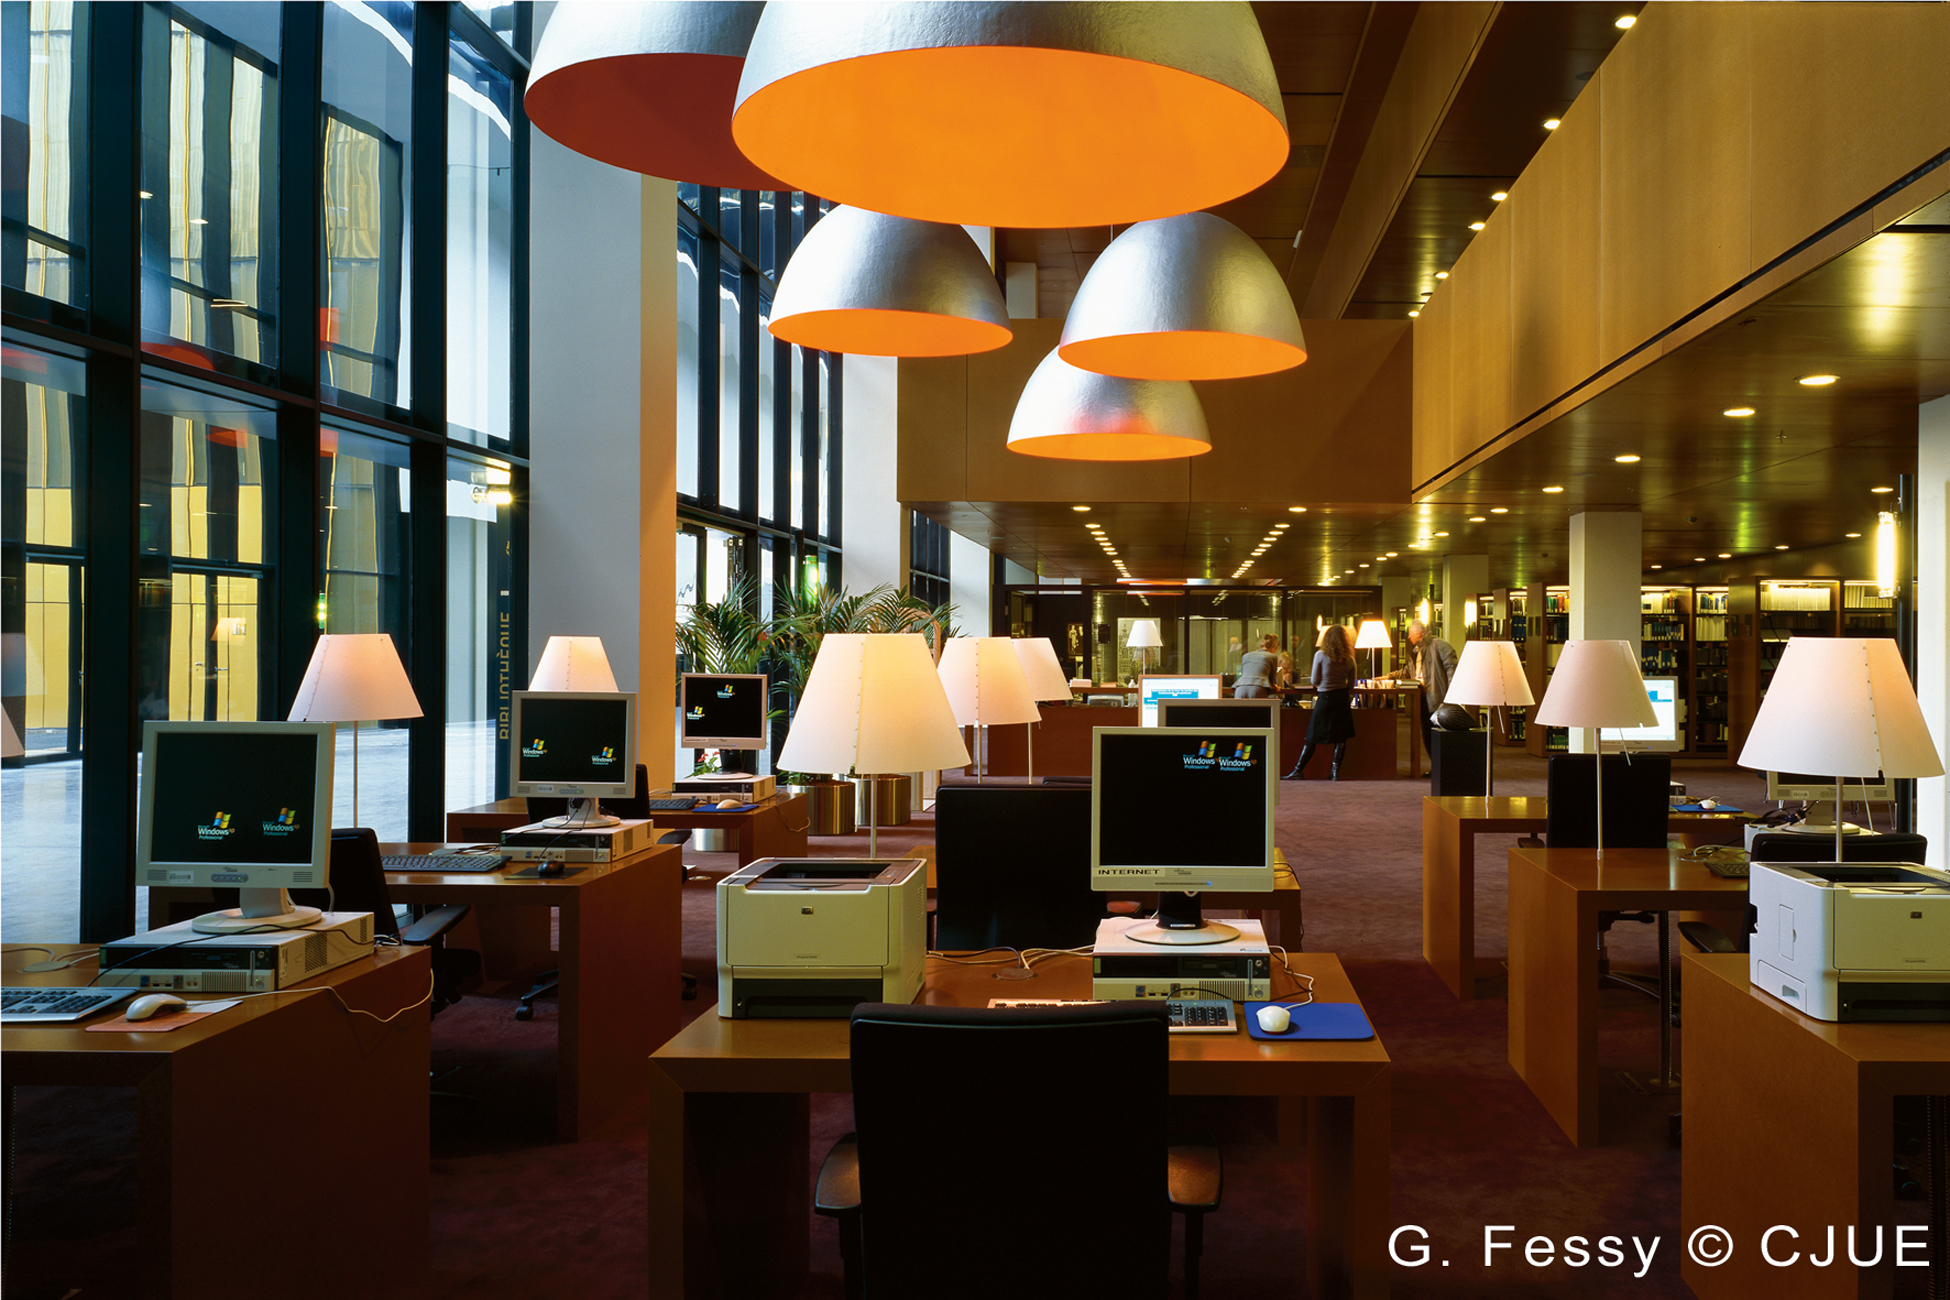 Curia Photos Court Of Justice Of The European Union # Bibliotheque Composition